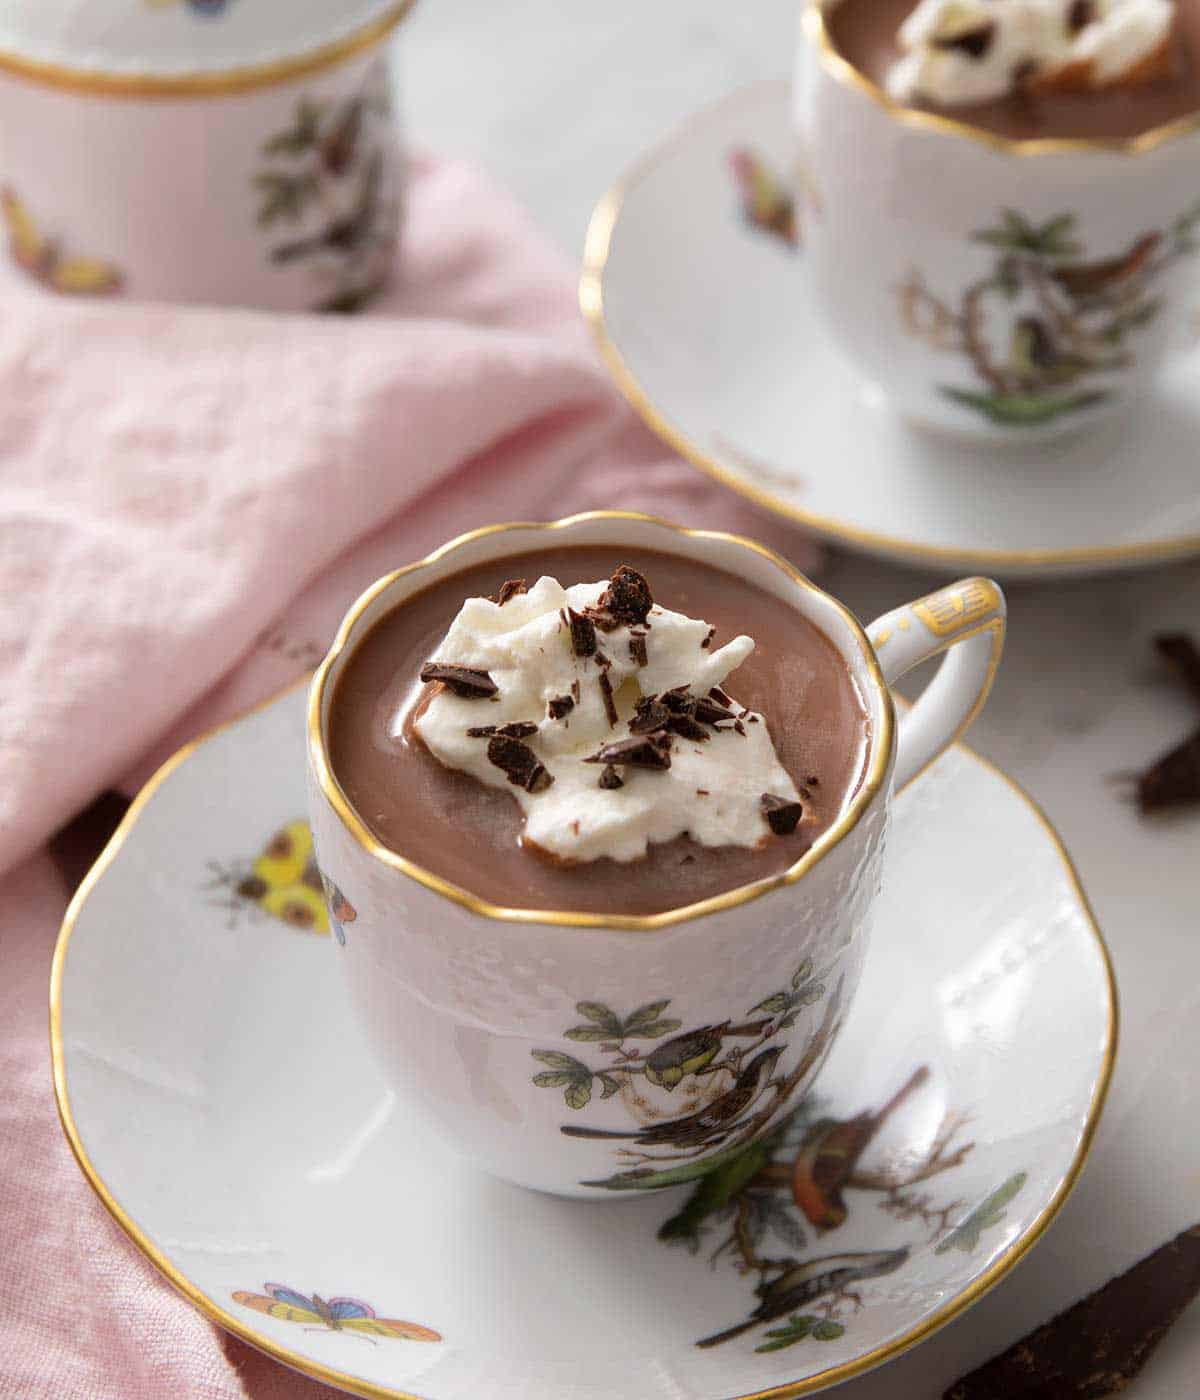 A side shot of a mug of hot chocolate topped with whipped cream